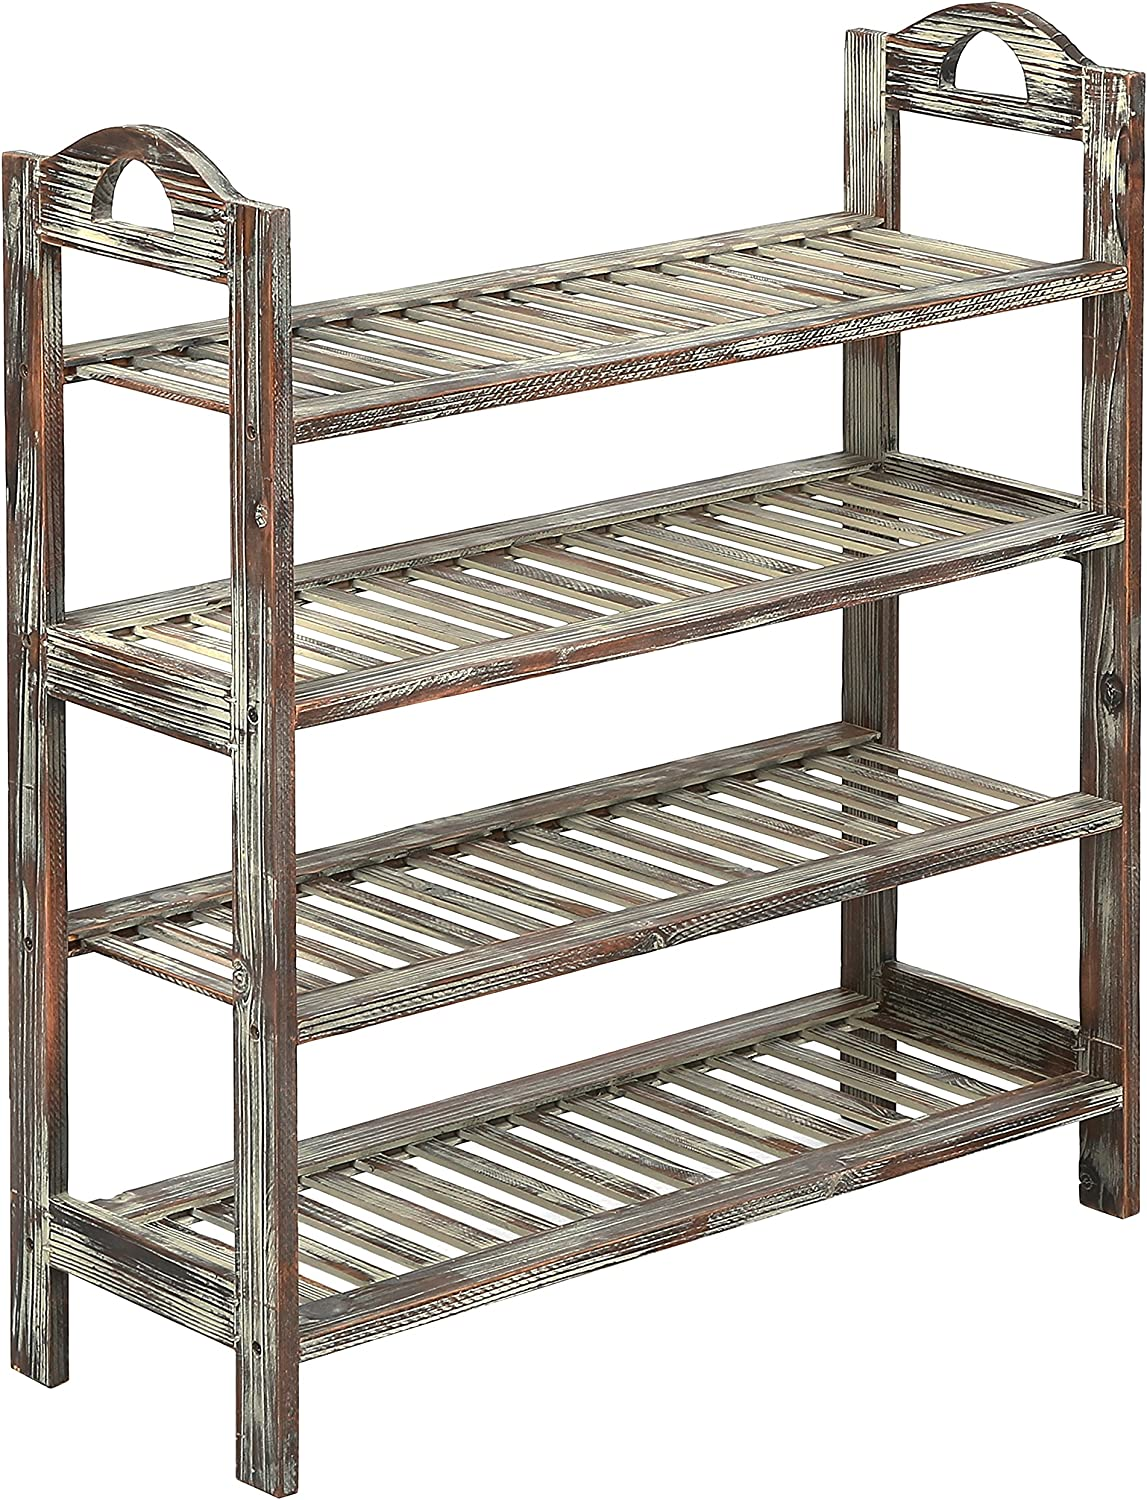 MyGift 4 Tier Country Rustic Torched Wood Slatted Storage shoes Rack, Entryway Utility Shelf